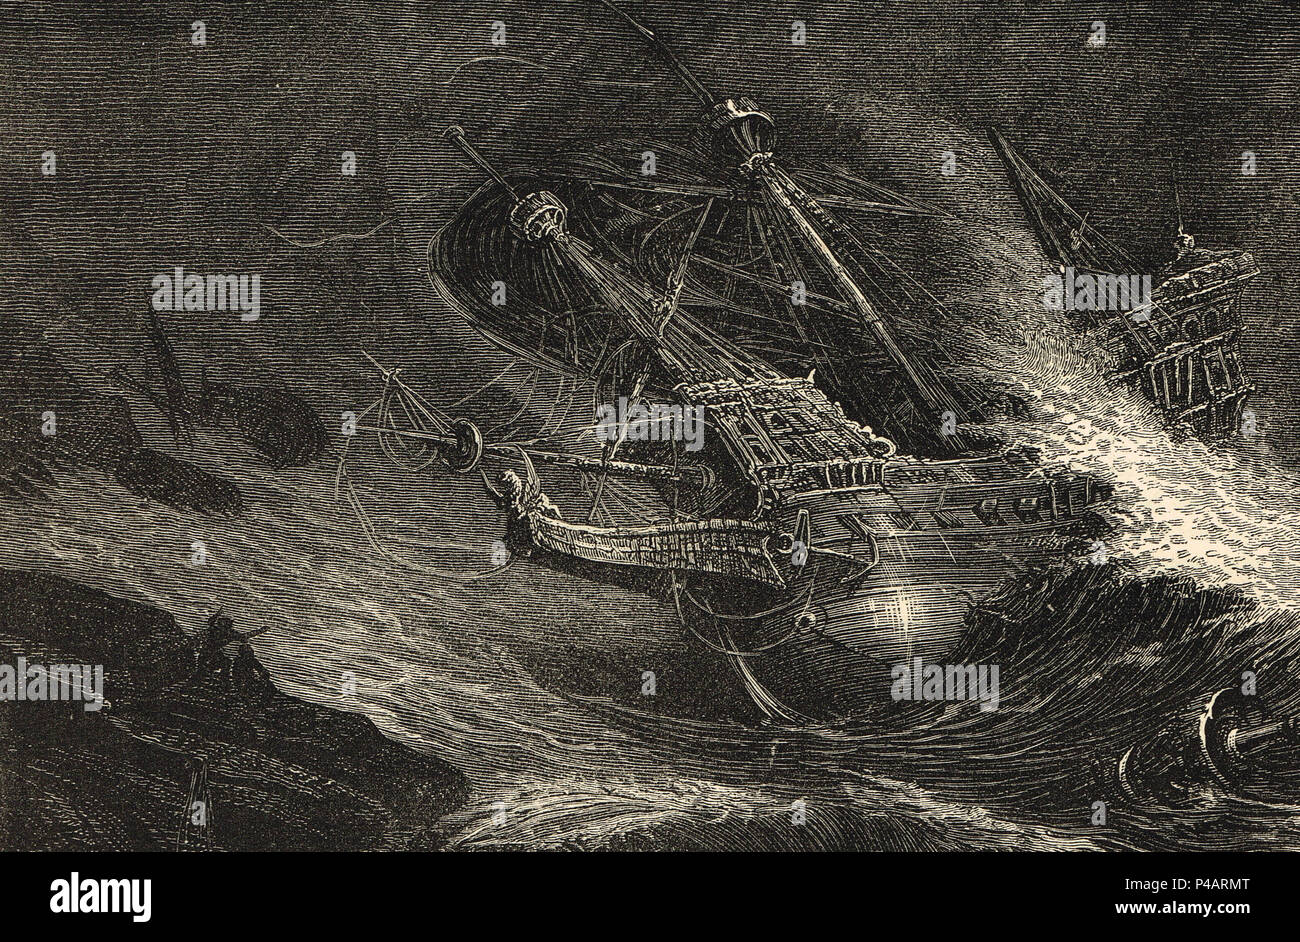 Wreck of an Armada ship, off the coast of Ireland, Defeat of the Spanish Armada, 1588 - Stock Image